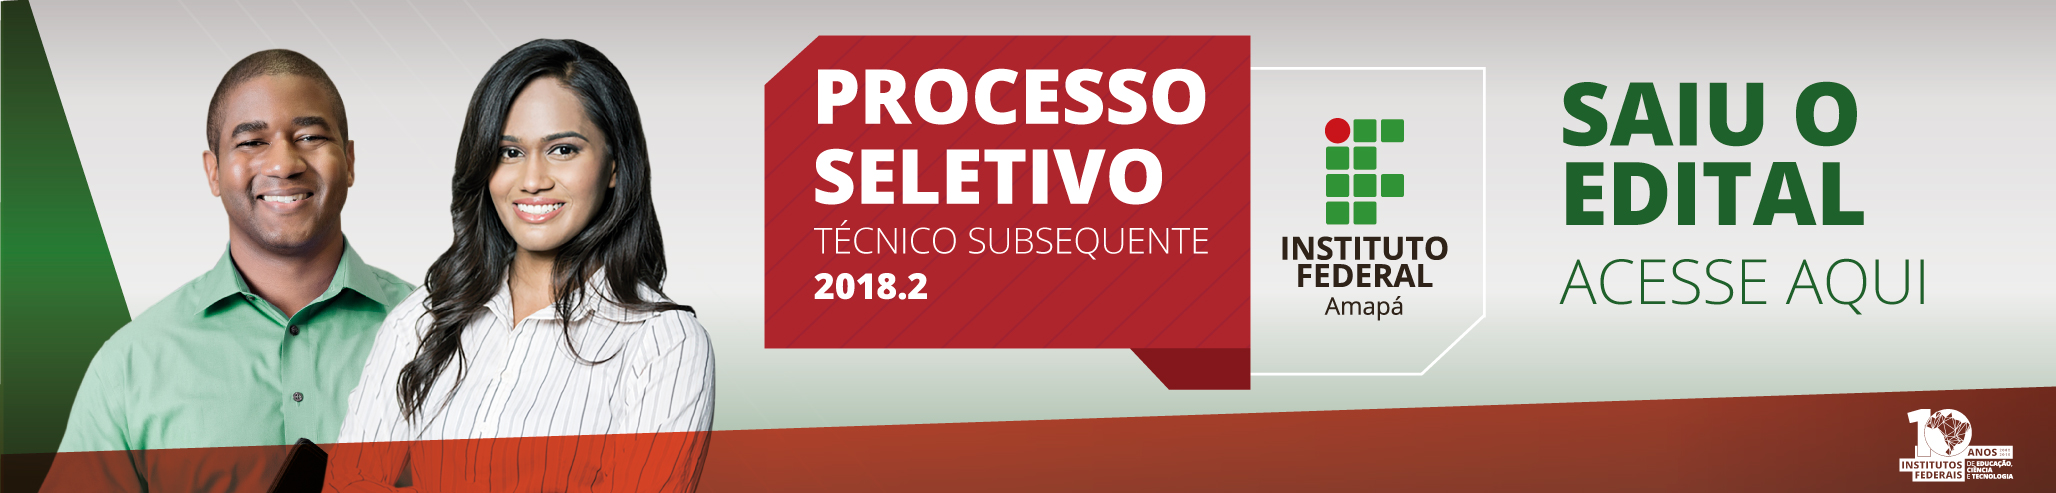 Processo Seletivo Subsequente 2018.2